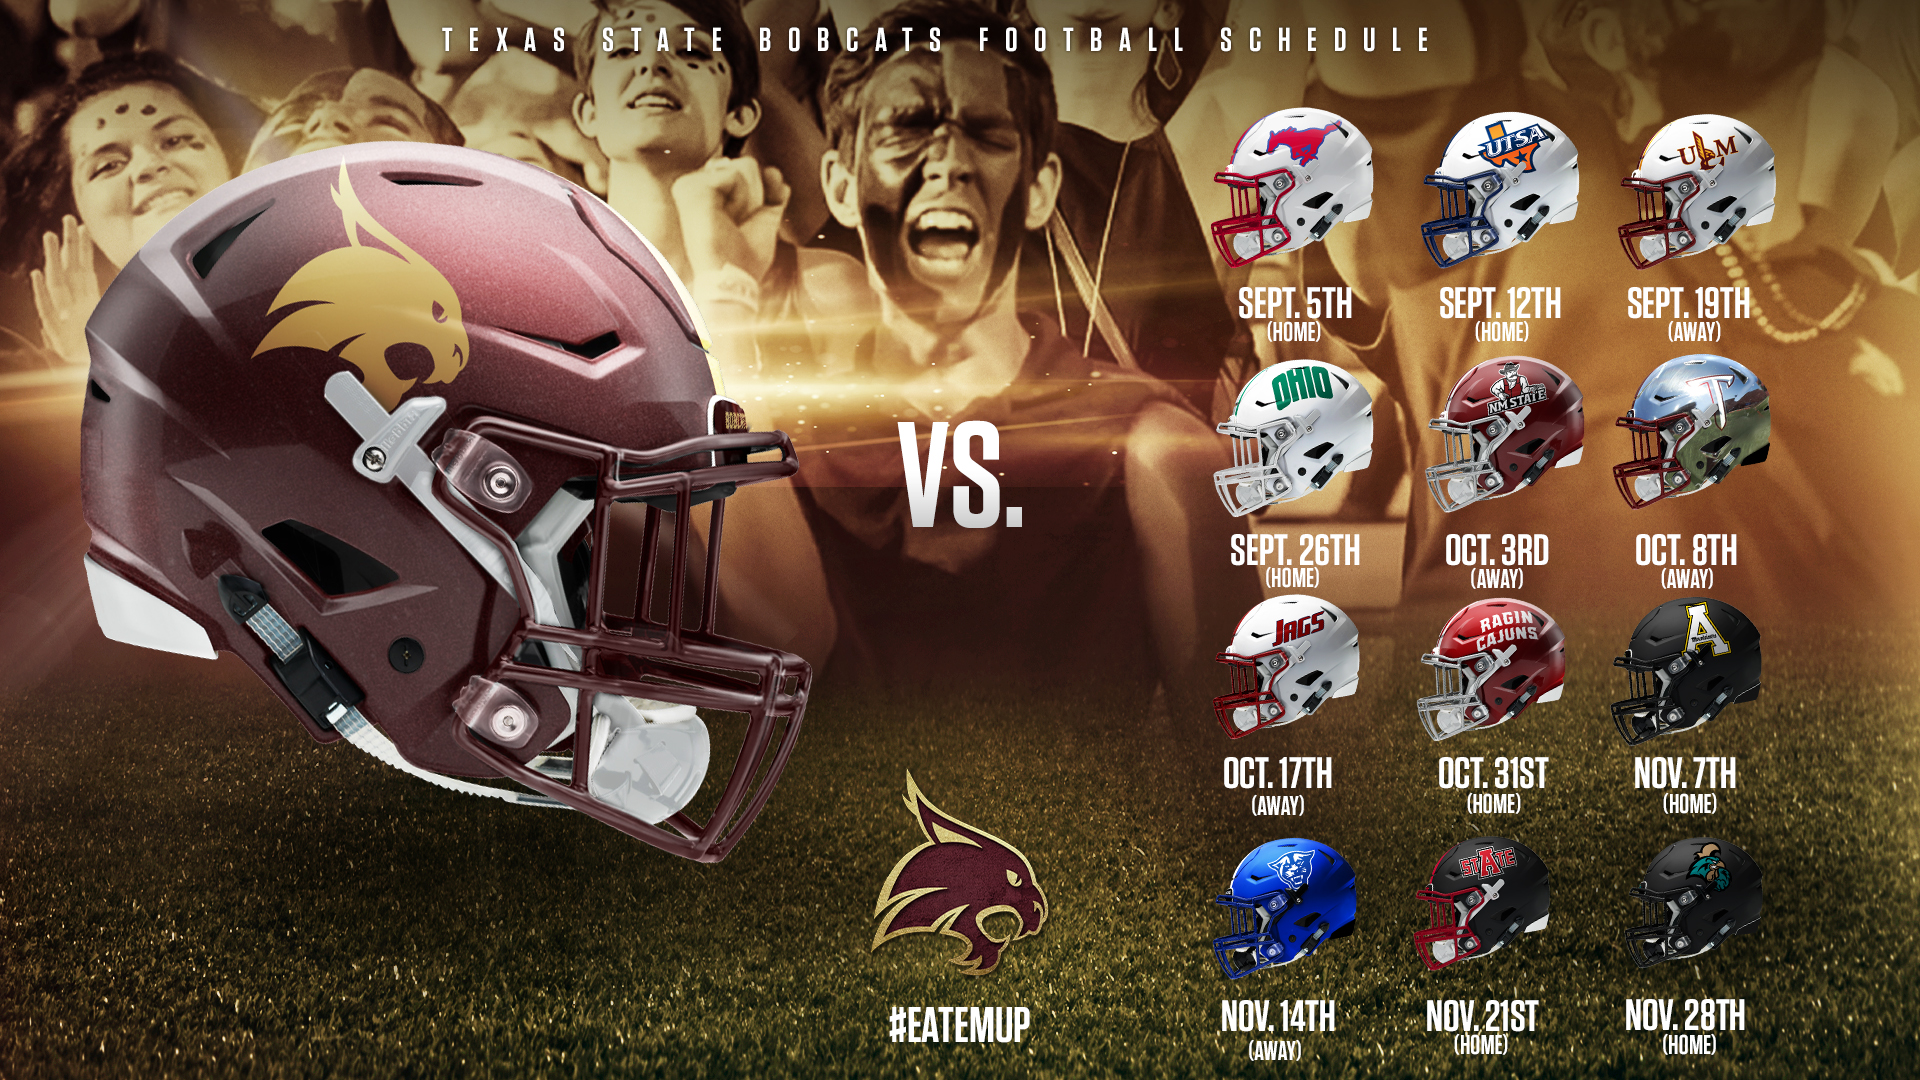 Sun Belt Conference Announces Texas State S 2020 Football Schedule Texas State Athletics